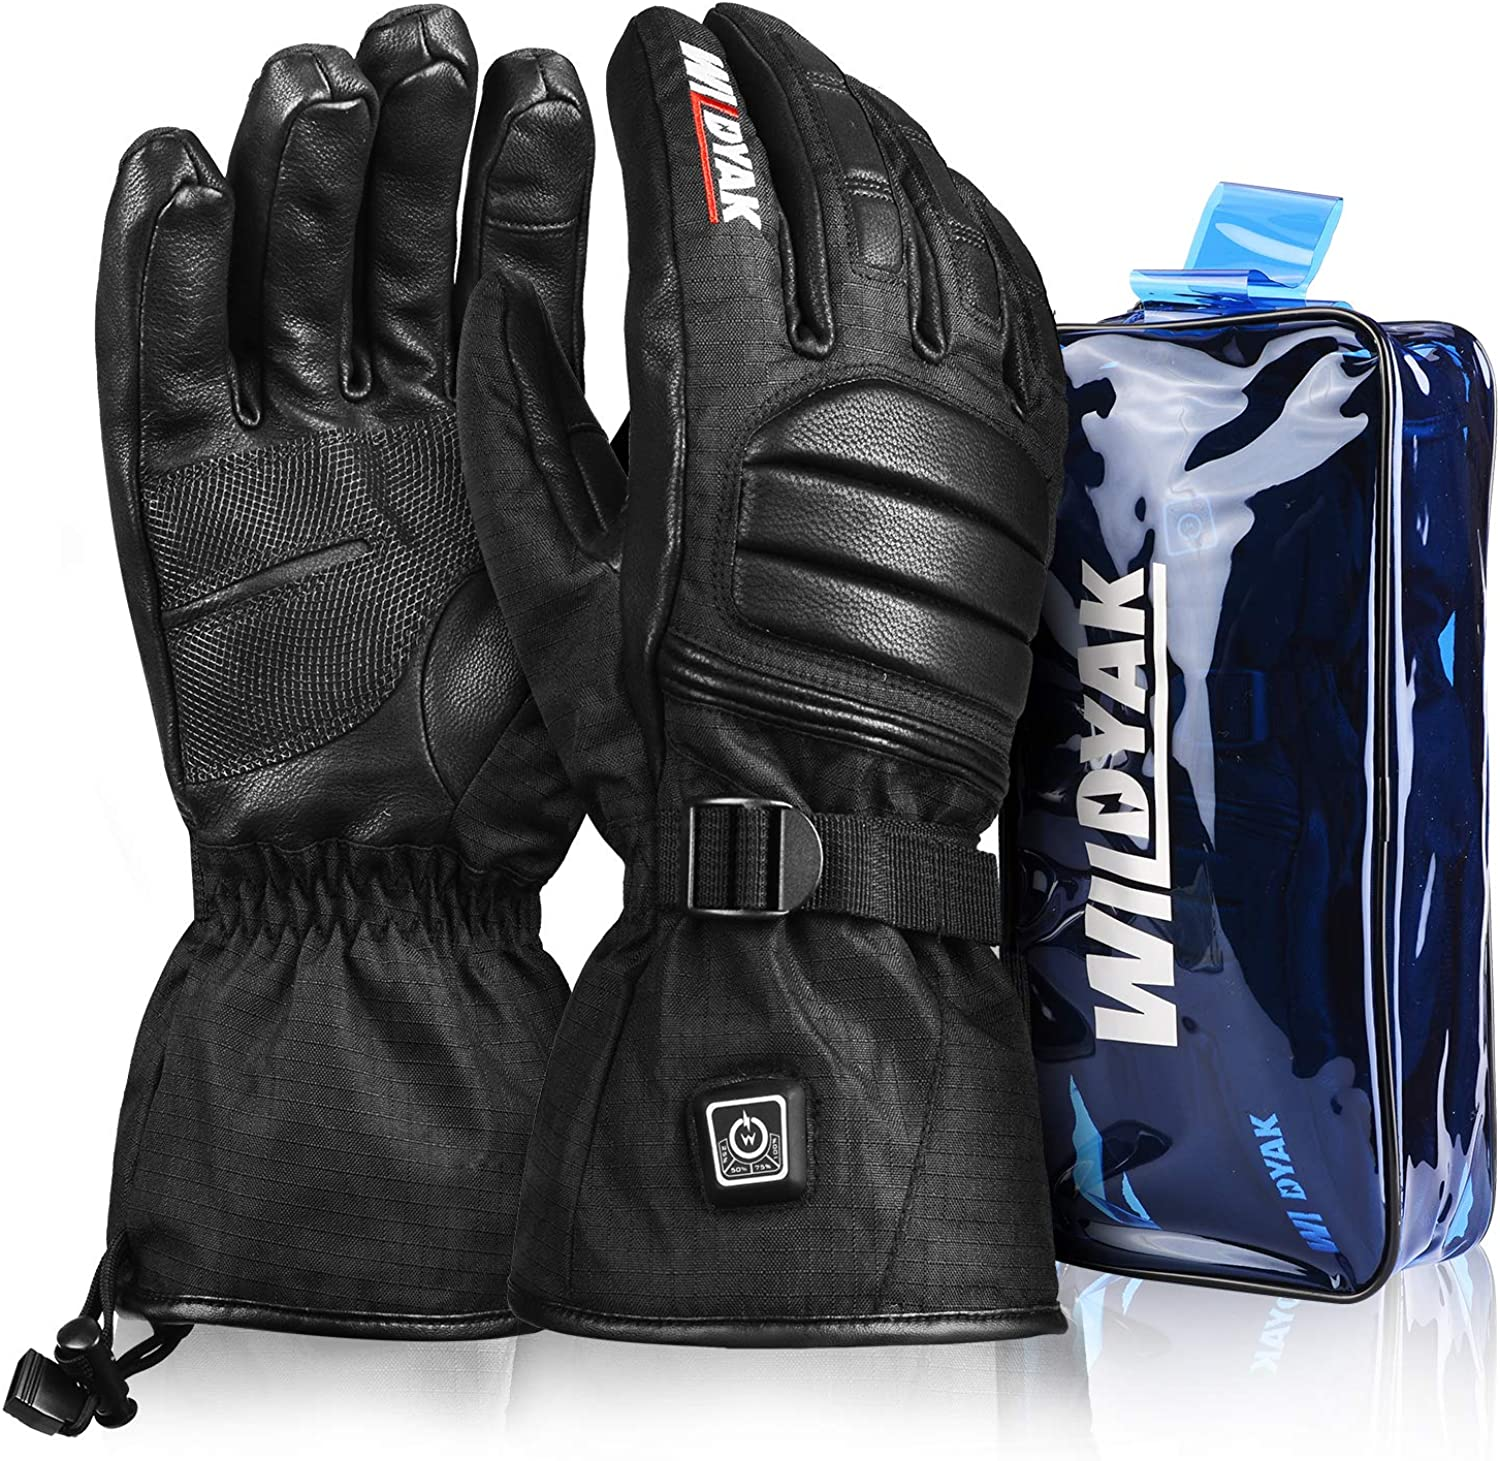 Heated Gloves for Men&Women, Rechargeable Electric Heated Gloves for Skiing, Heated Mittens for Raynaud's, Arthritis